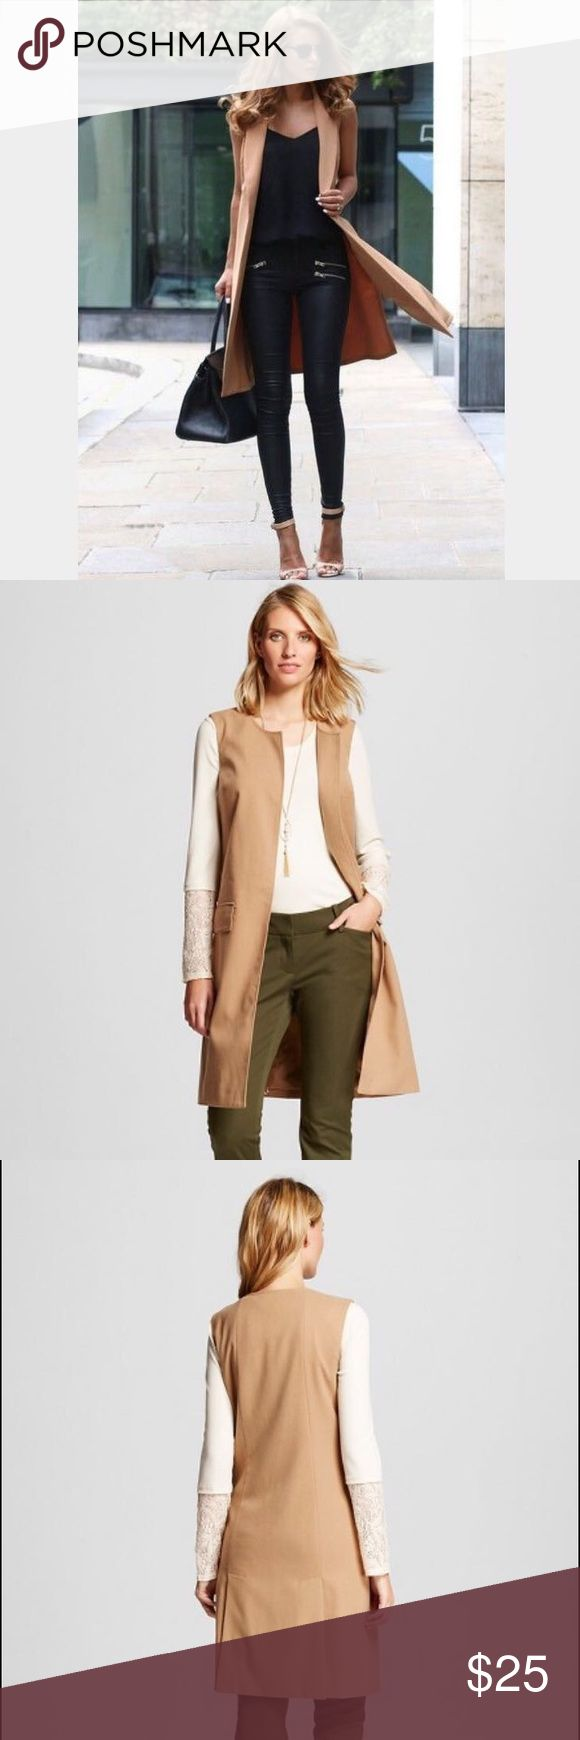 Fashionista Camel Vest Merona Camel Vest  Beautiful Dressy Blazor  Front flap pockets  Gazelle Brown  70% poly 25% Rayon 3% Wool 2% Spandex Brand new with tags Merona Jackets & Coats Vests